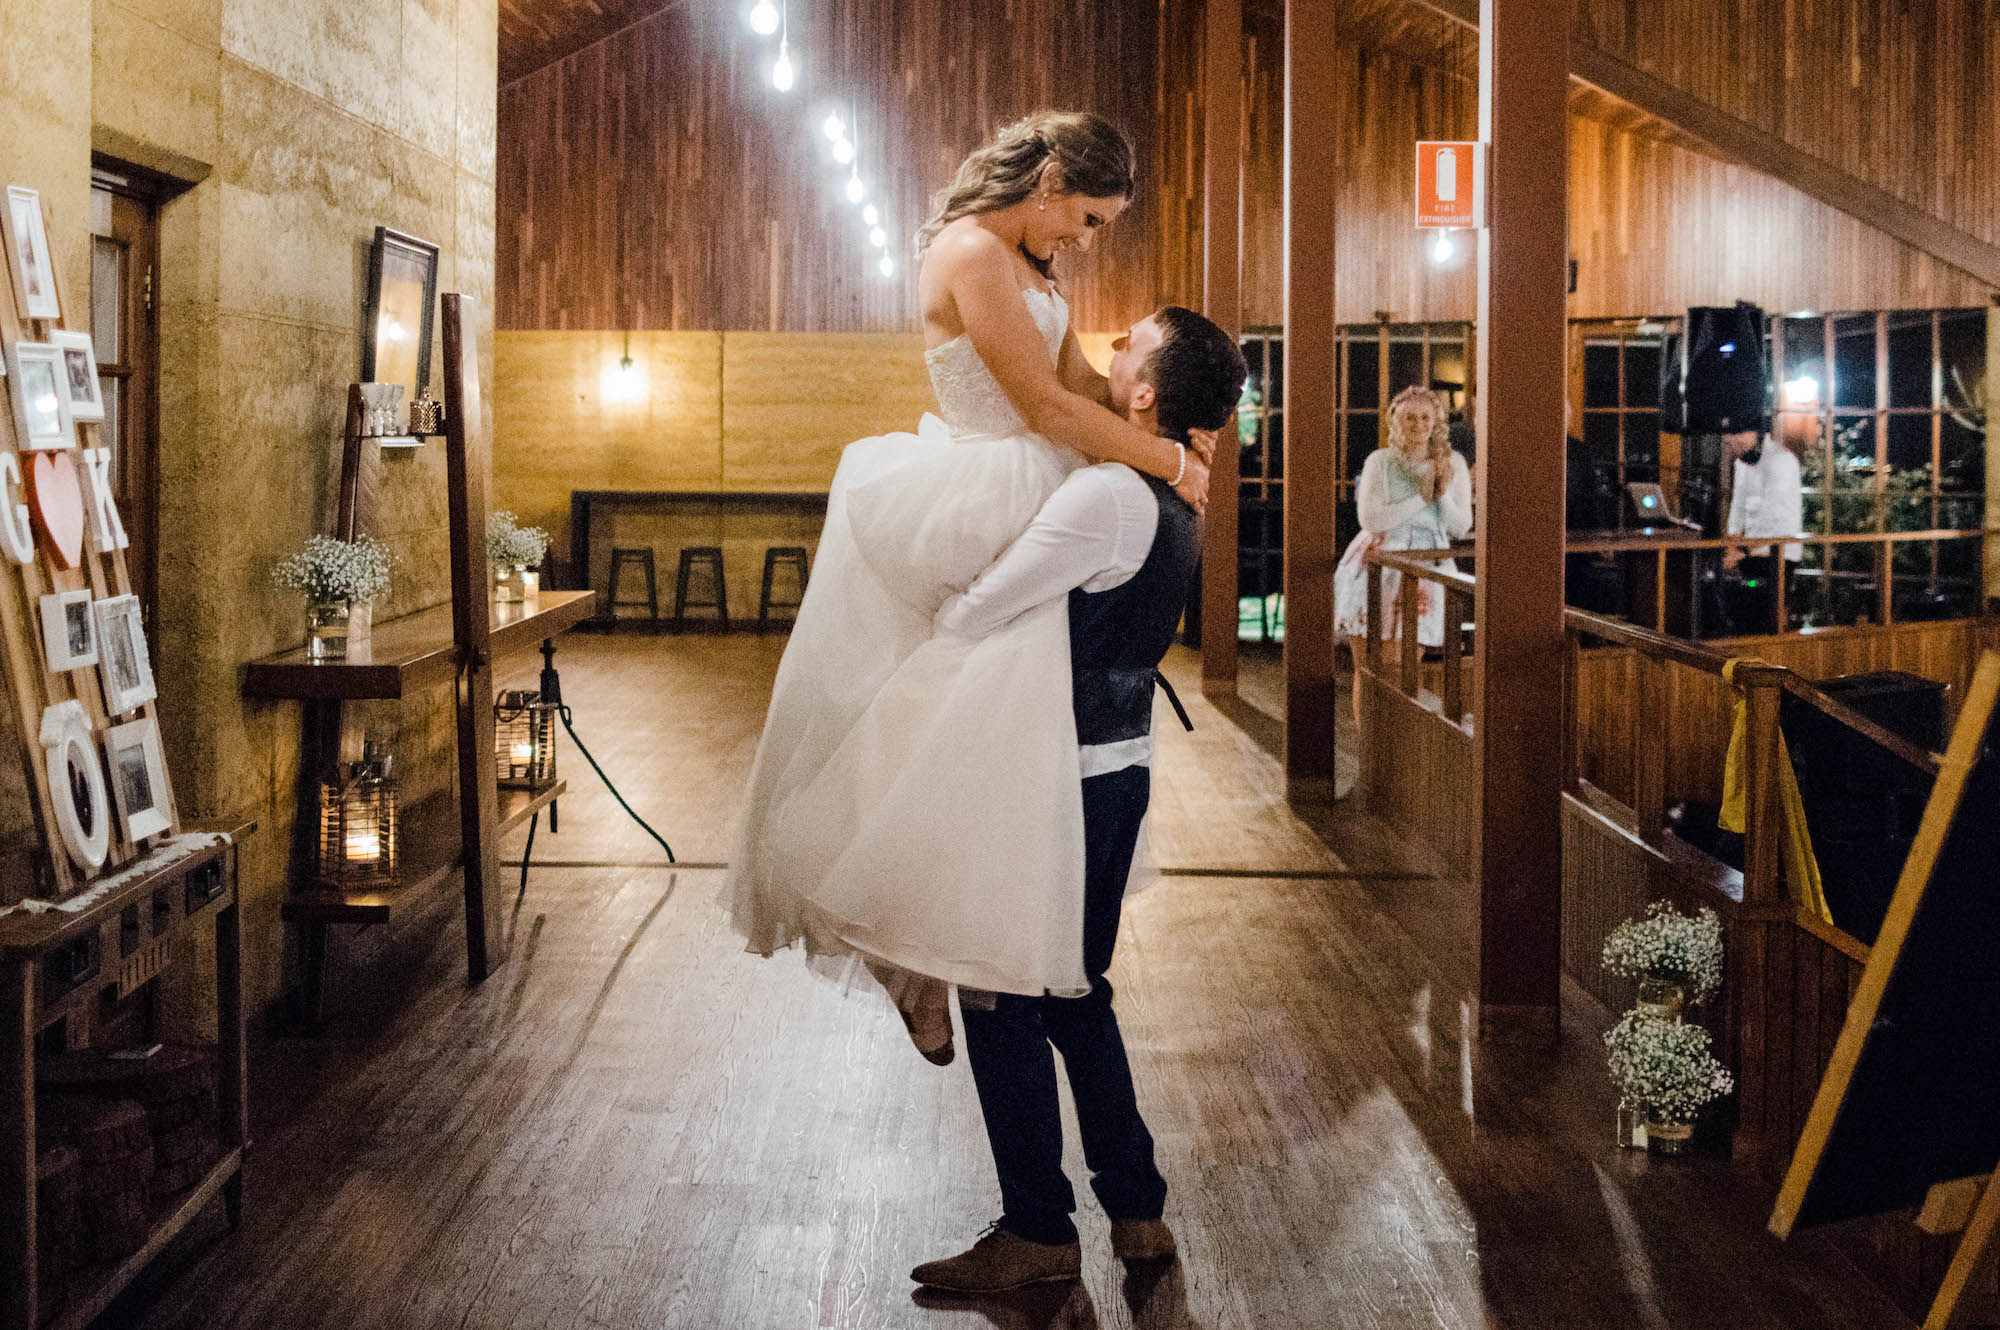 The groom lifts the bride during their first dance at Quarry Farm.